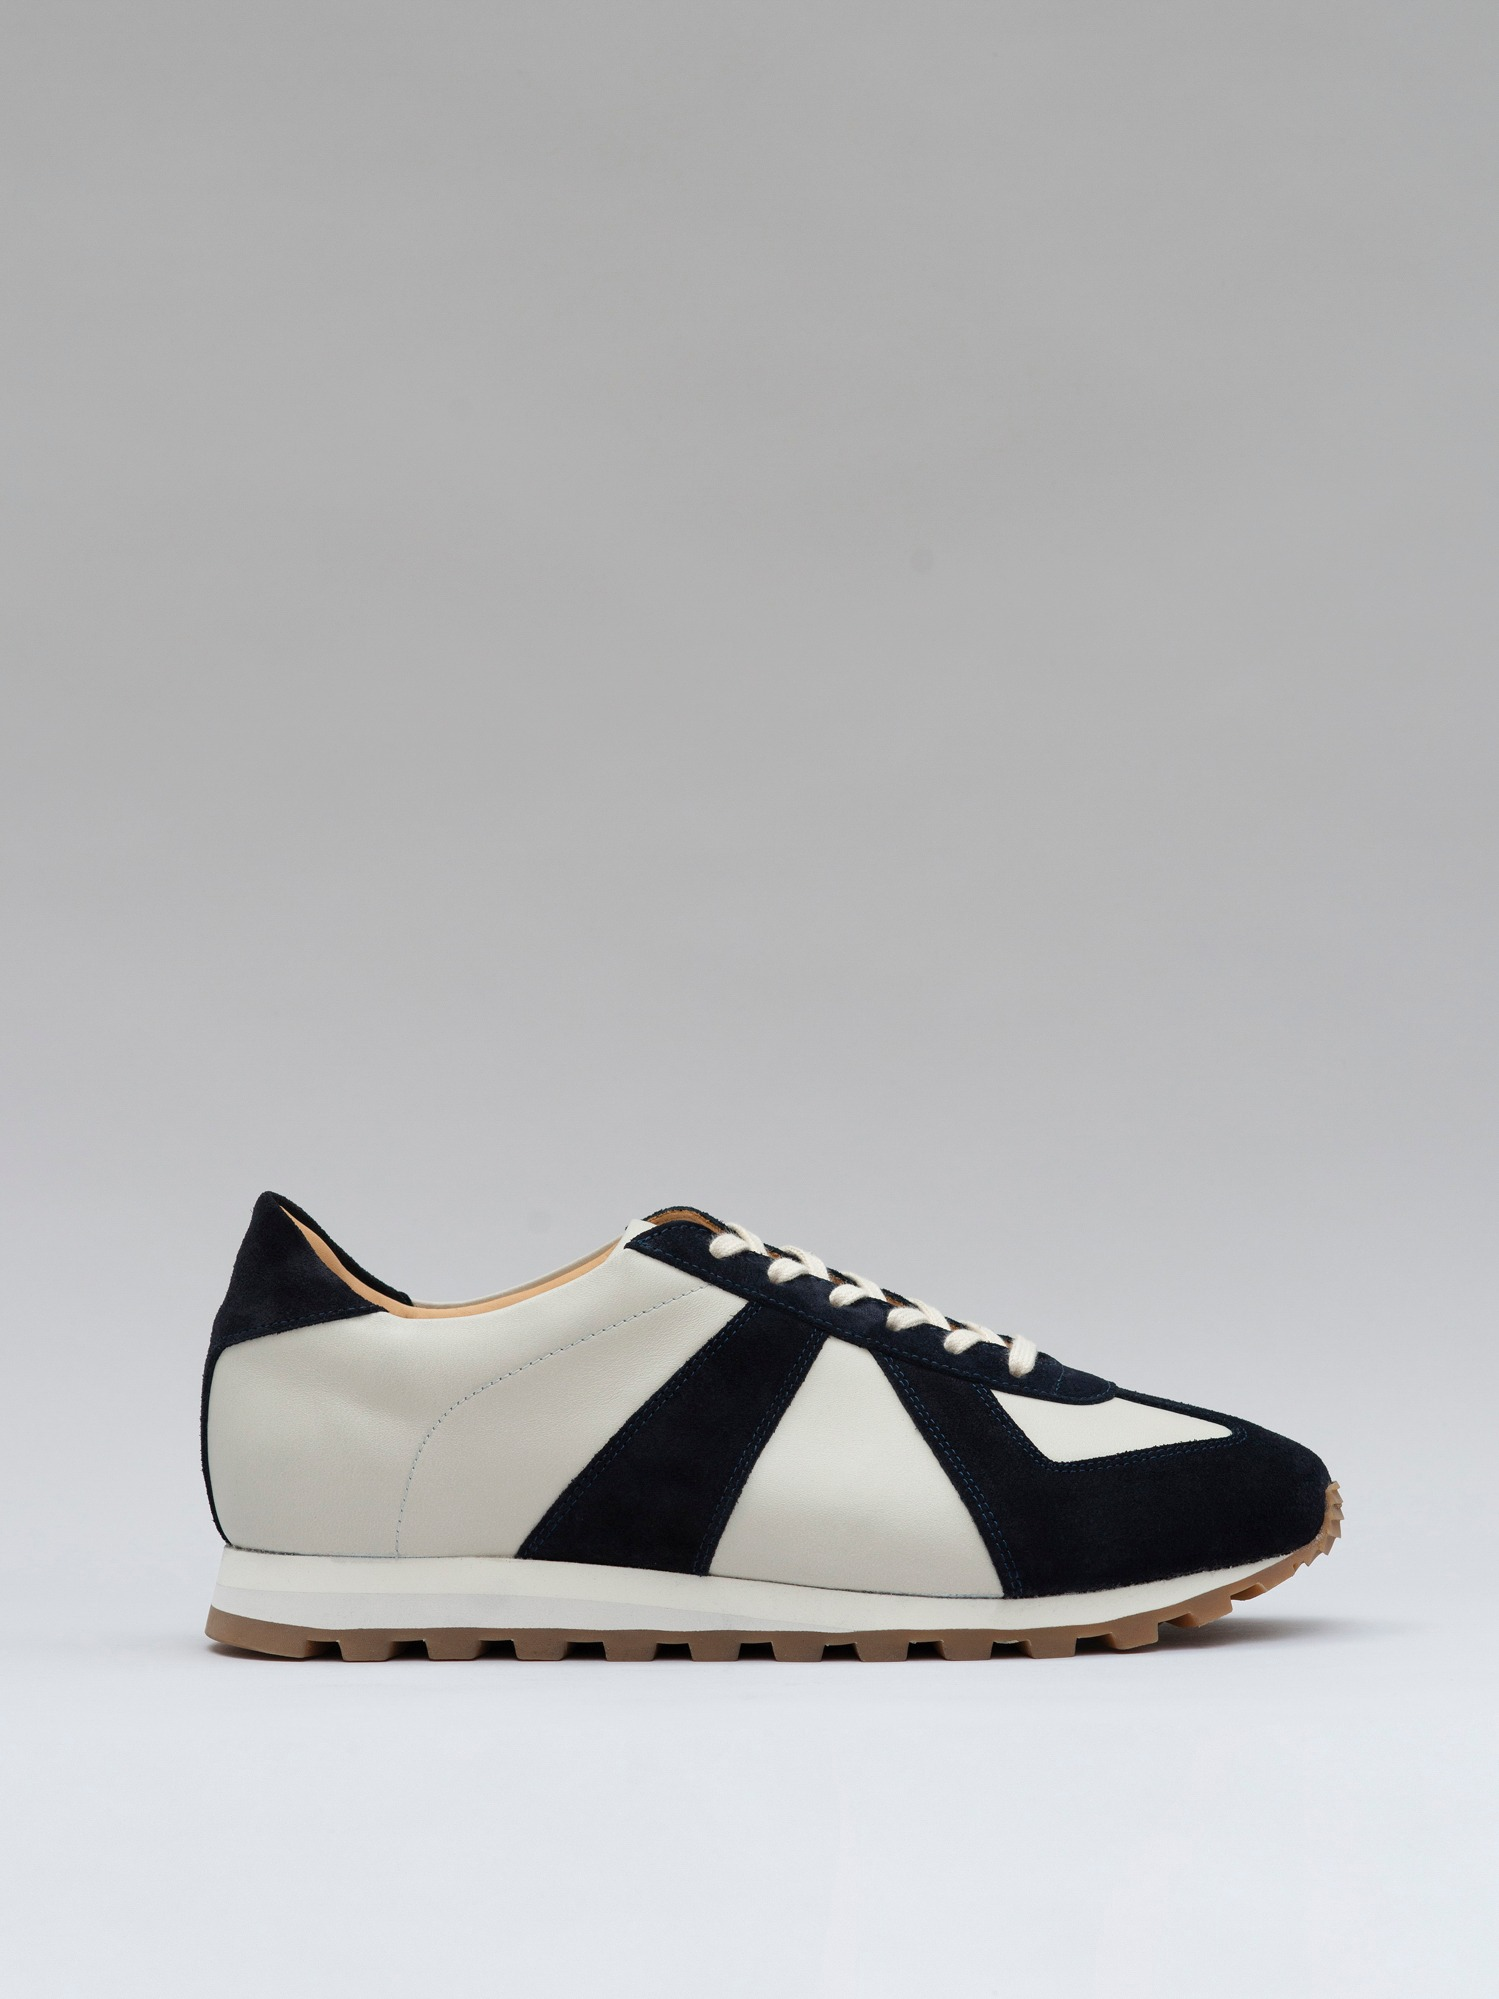 balmoral 07 suede/leather navy